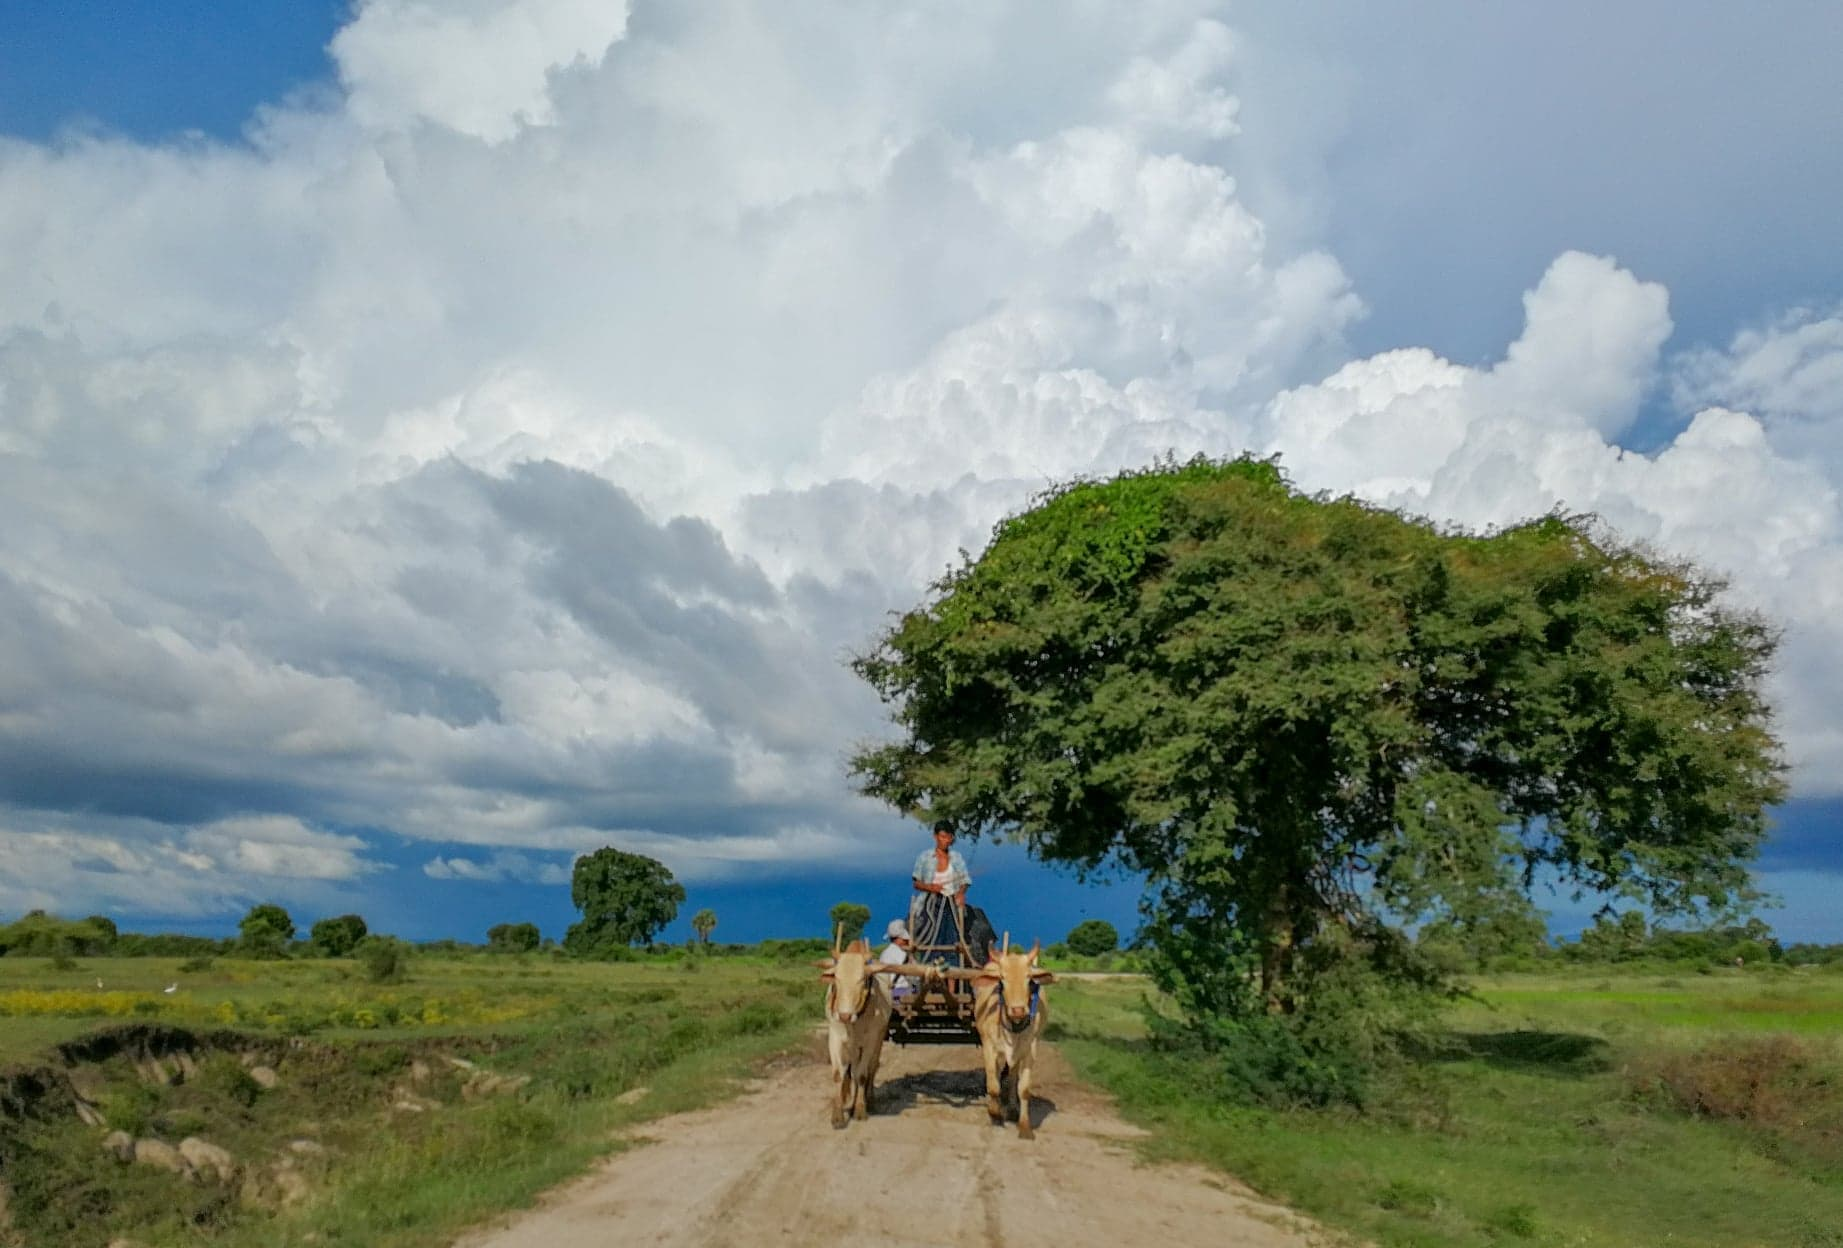 Rainy season in Myanmar. Ox cart being drawn near Mandalay, Burma.